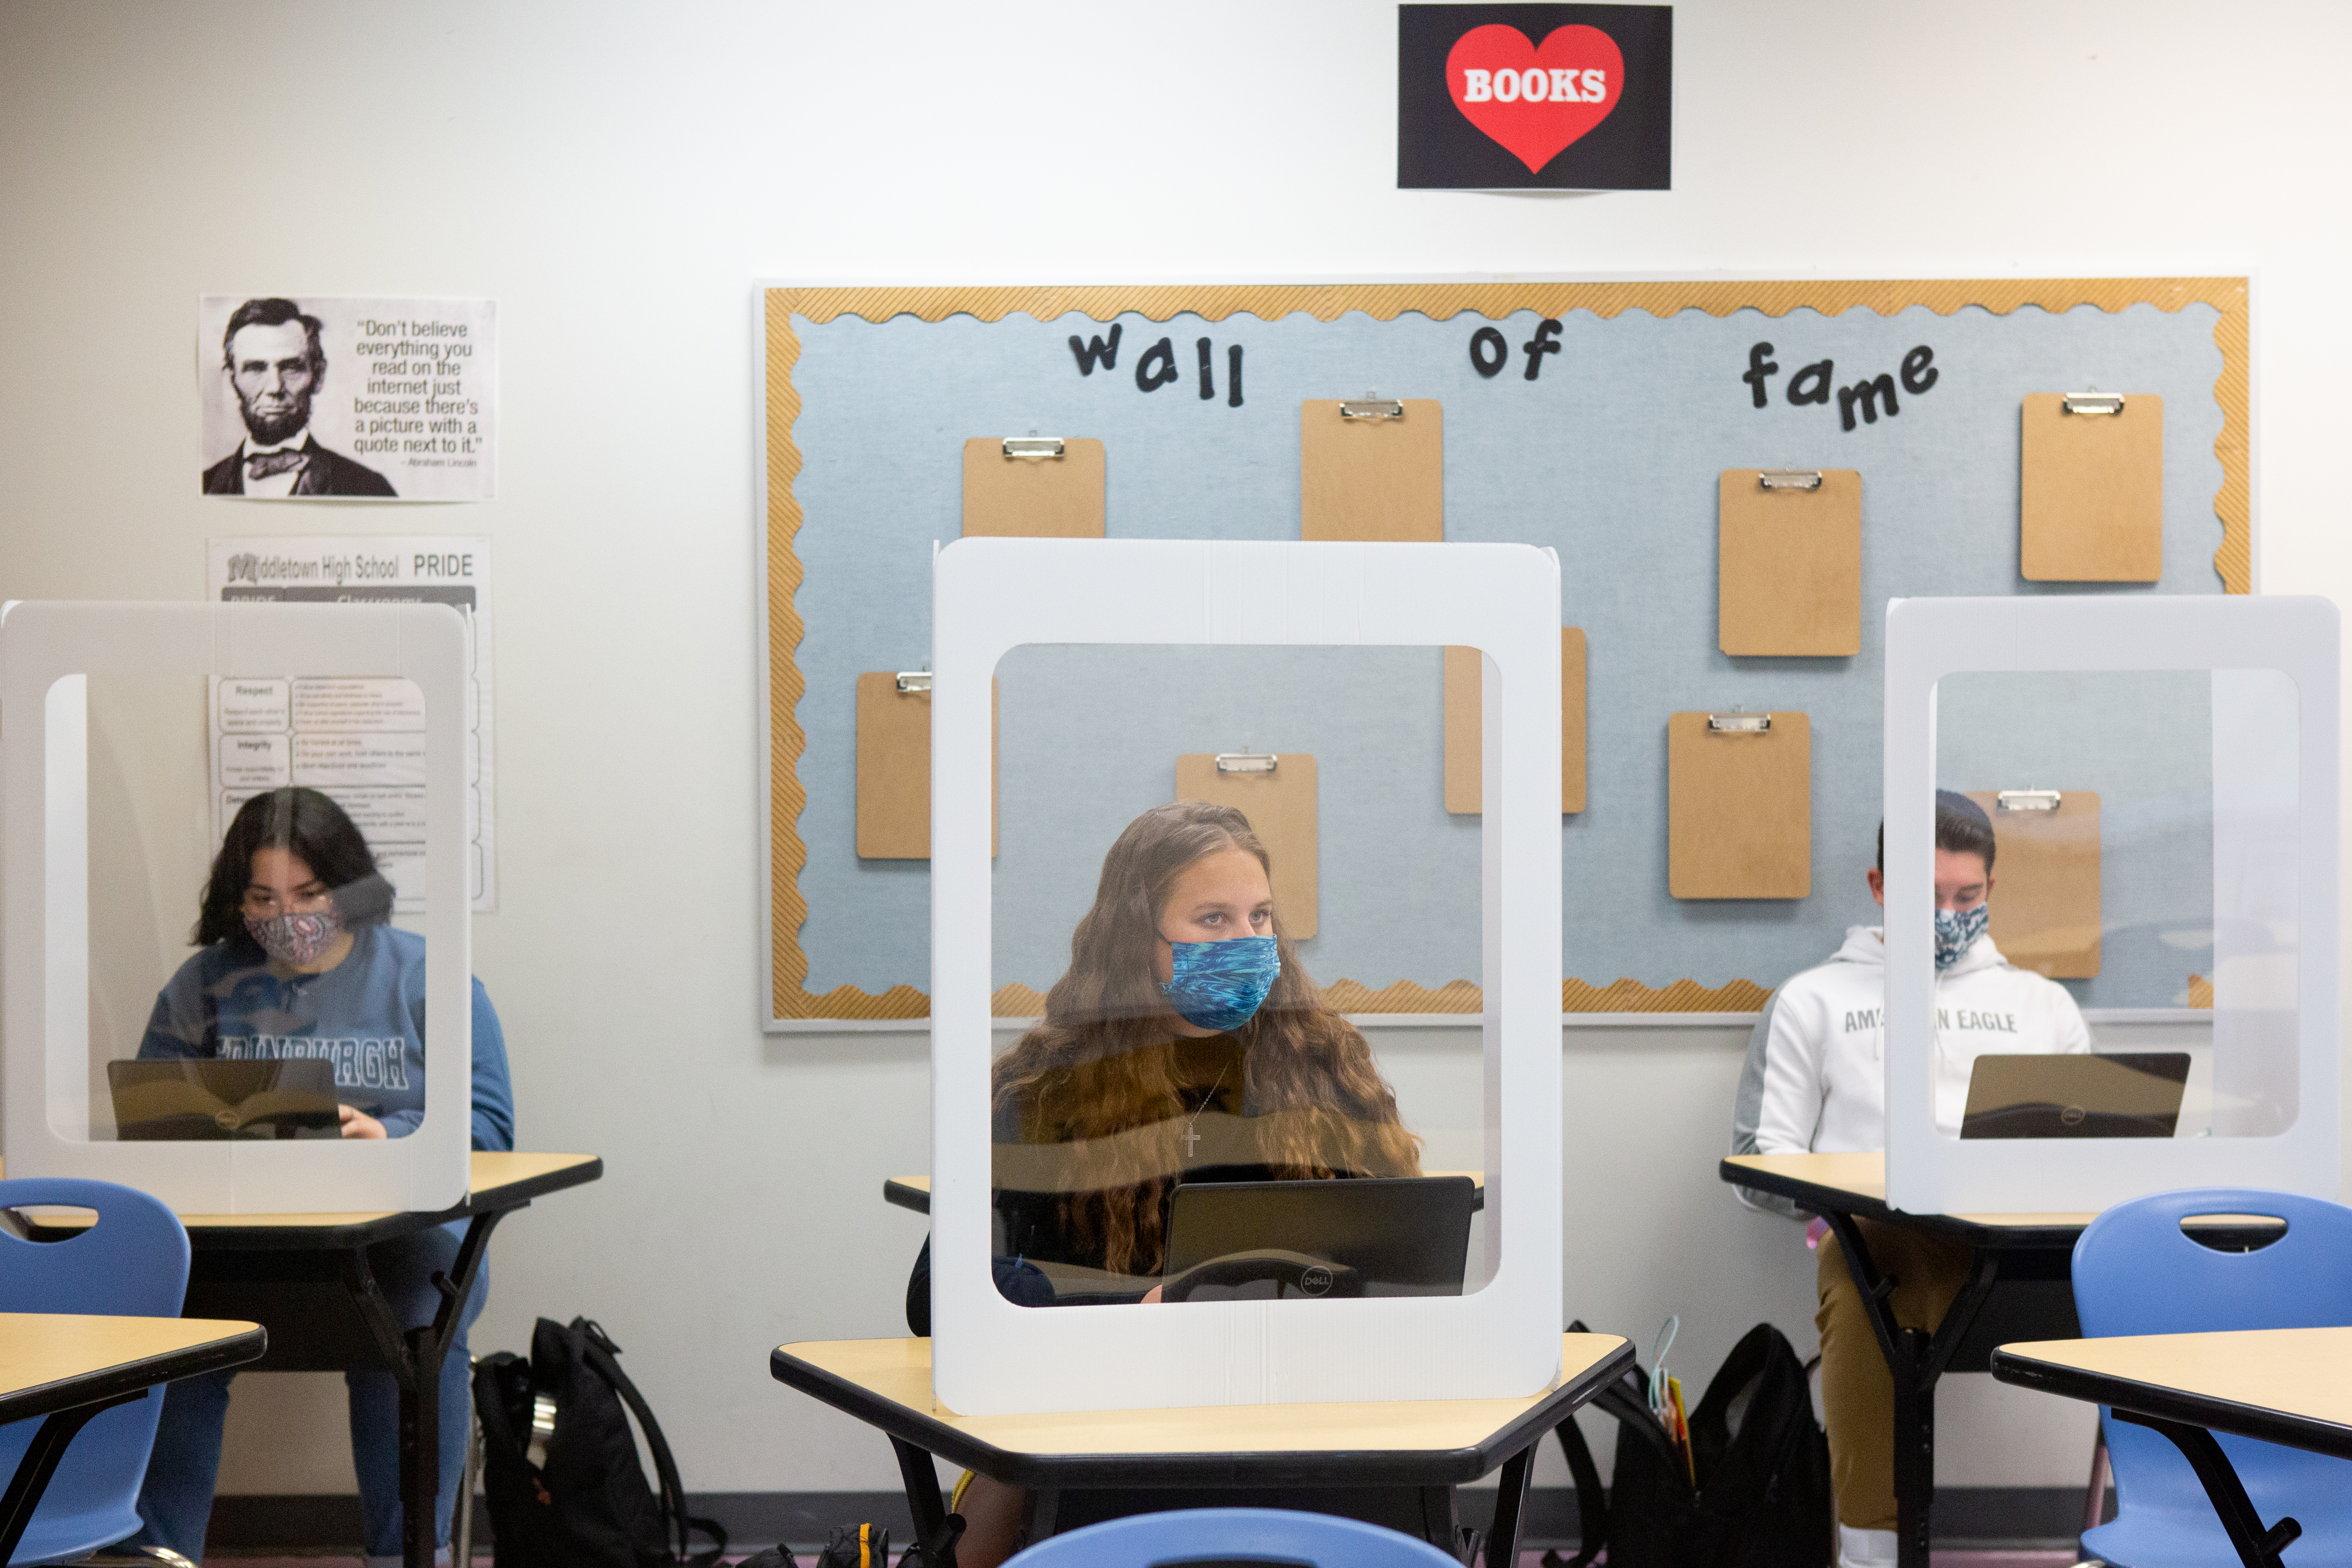 Student wearing a face masks seated behind desk shields.